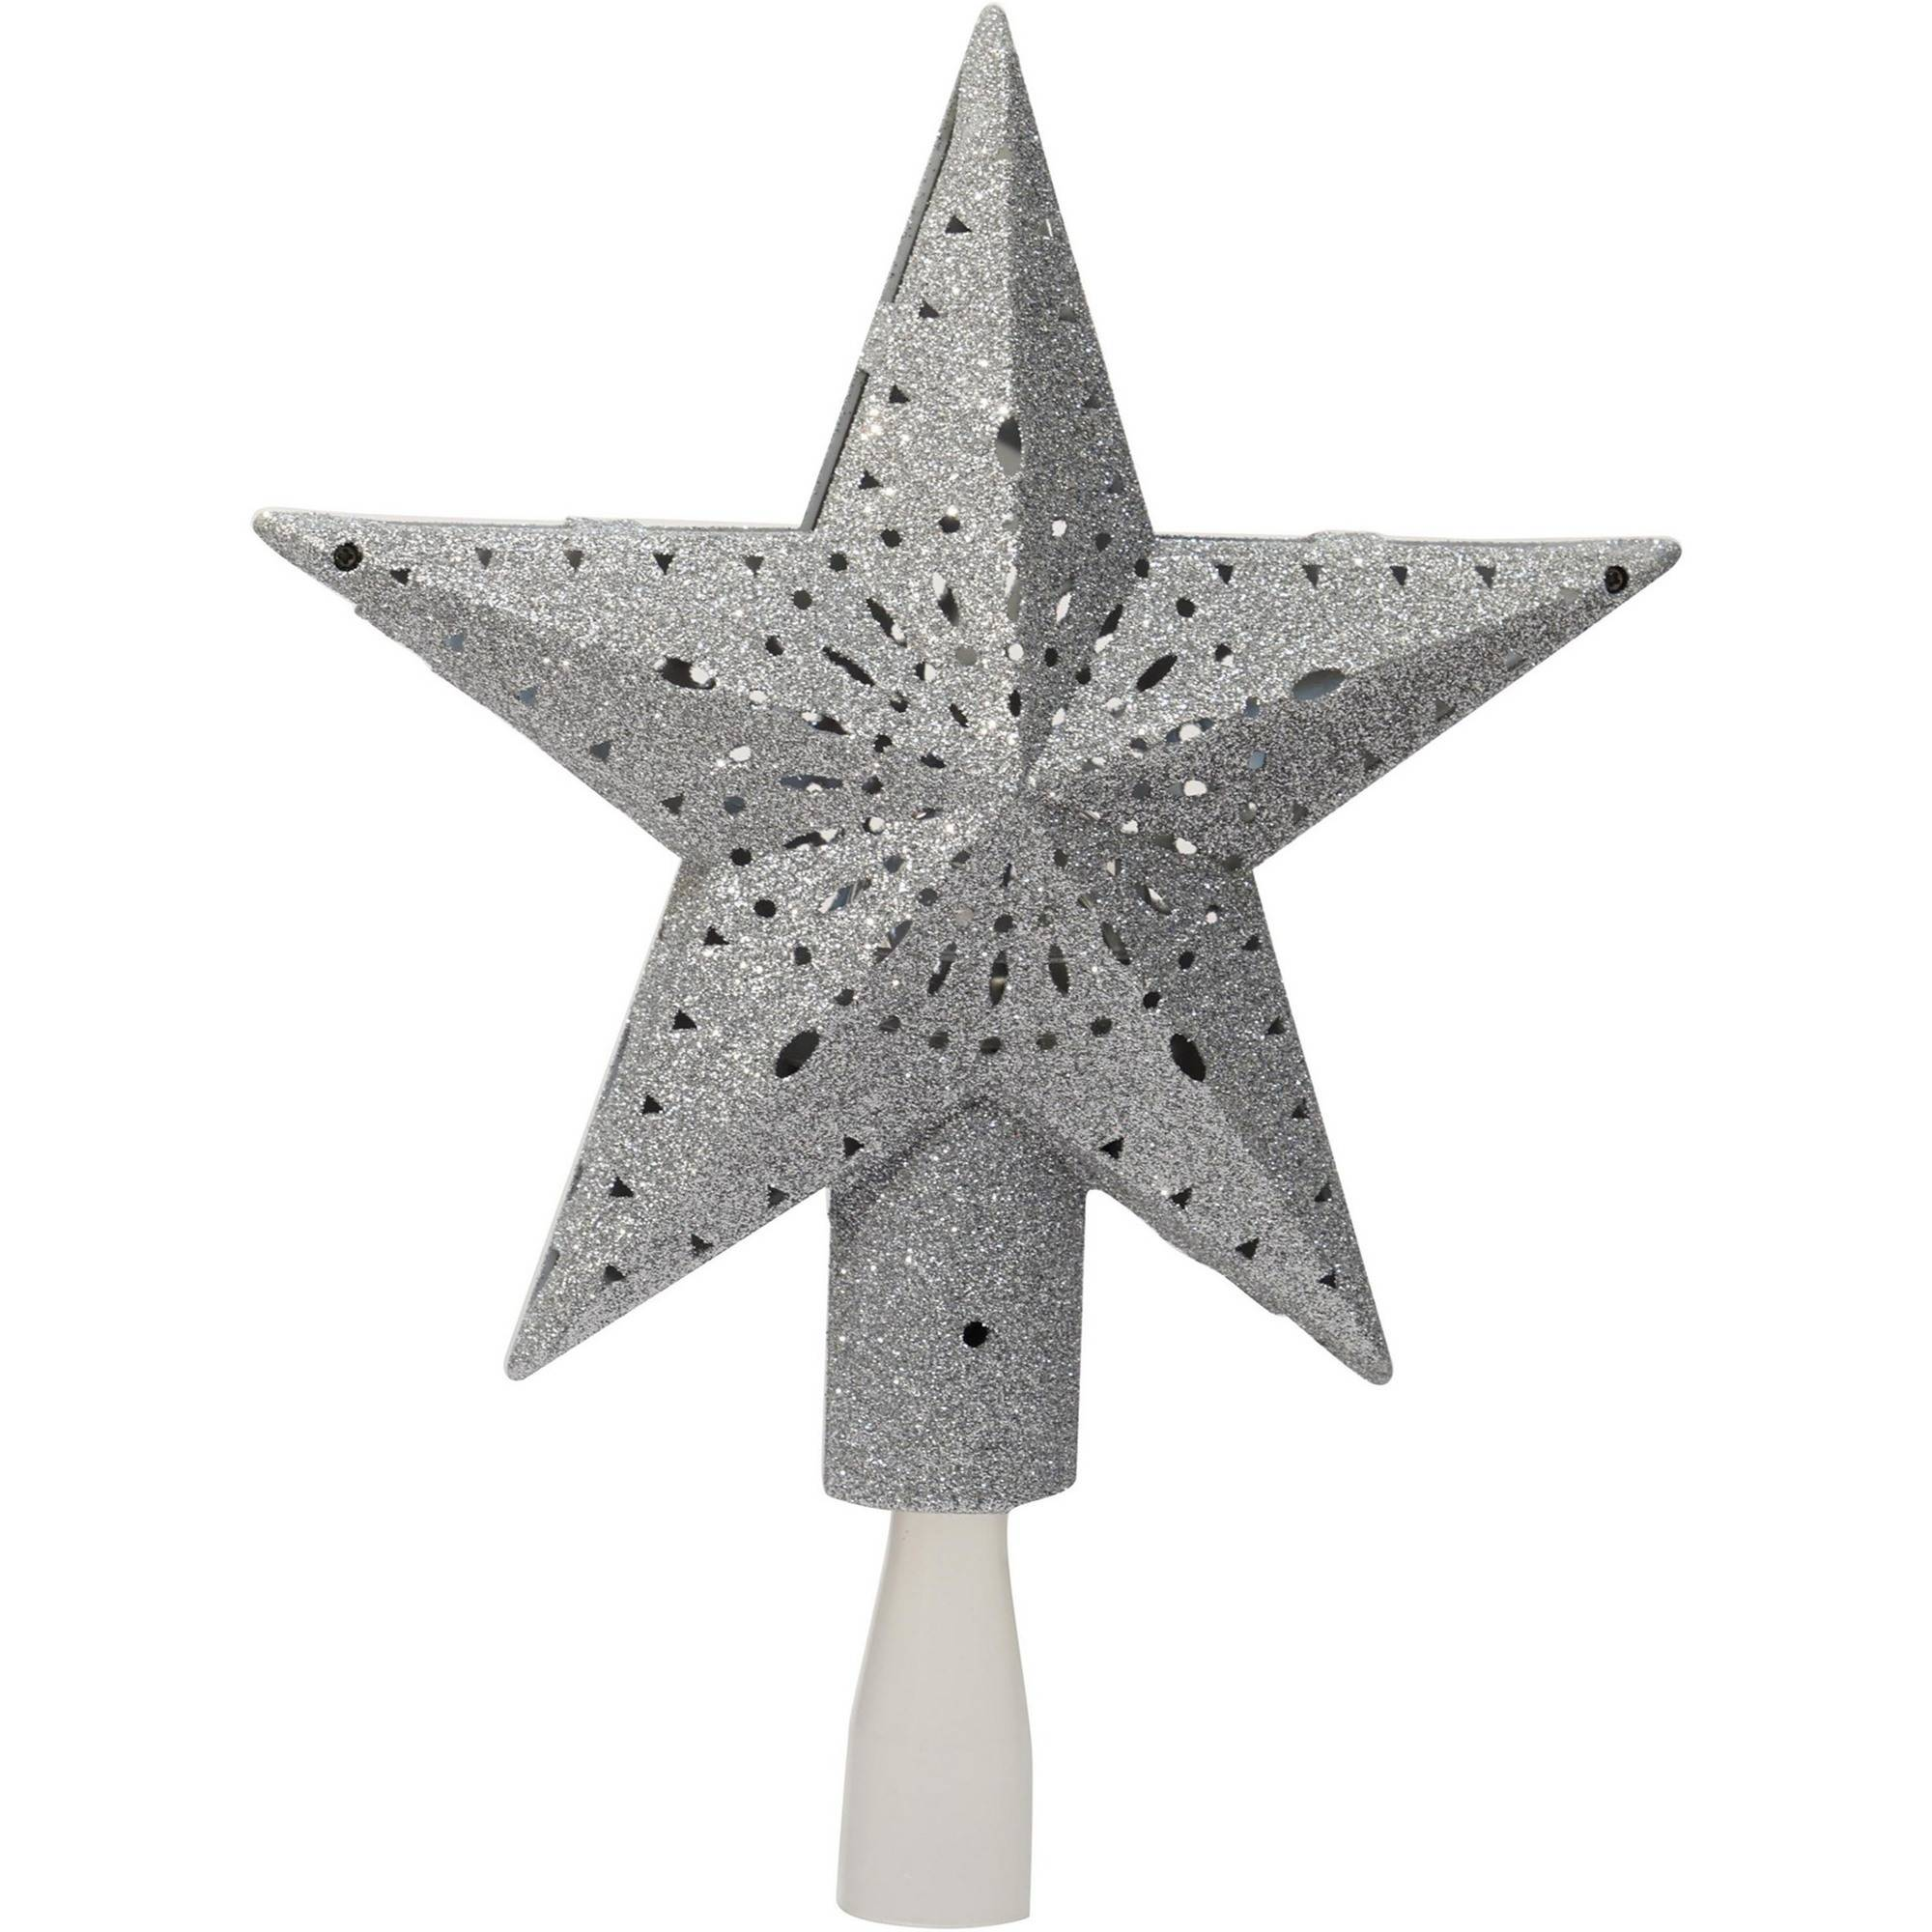 Holiday Time Christmas Ornaments 11.375 Silver Star Tree Topper with 3 LED Cool White Lights